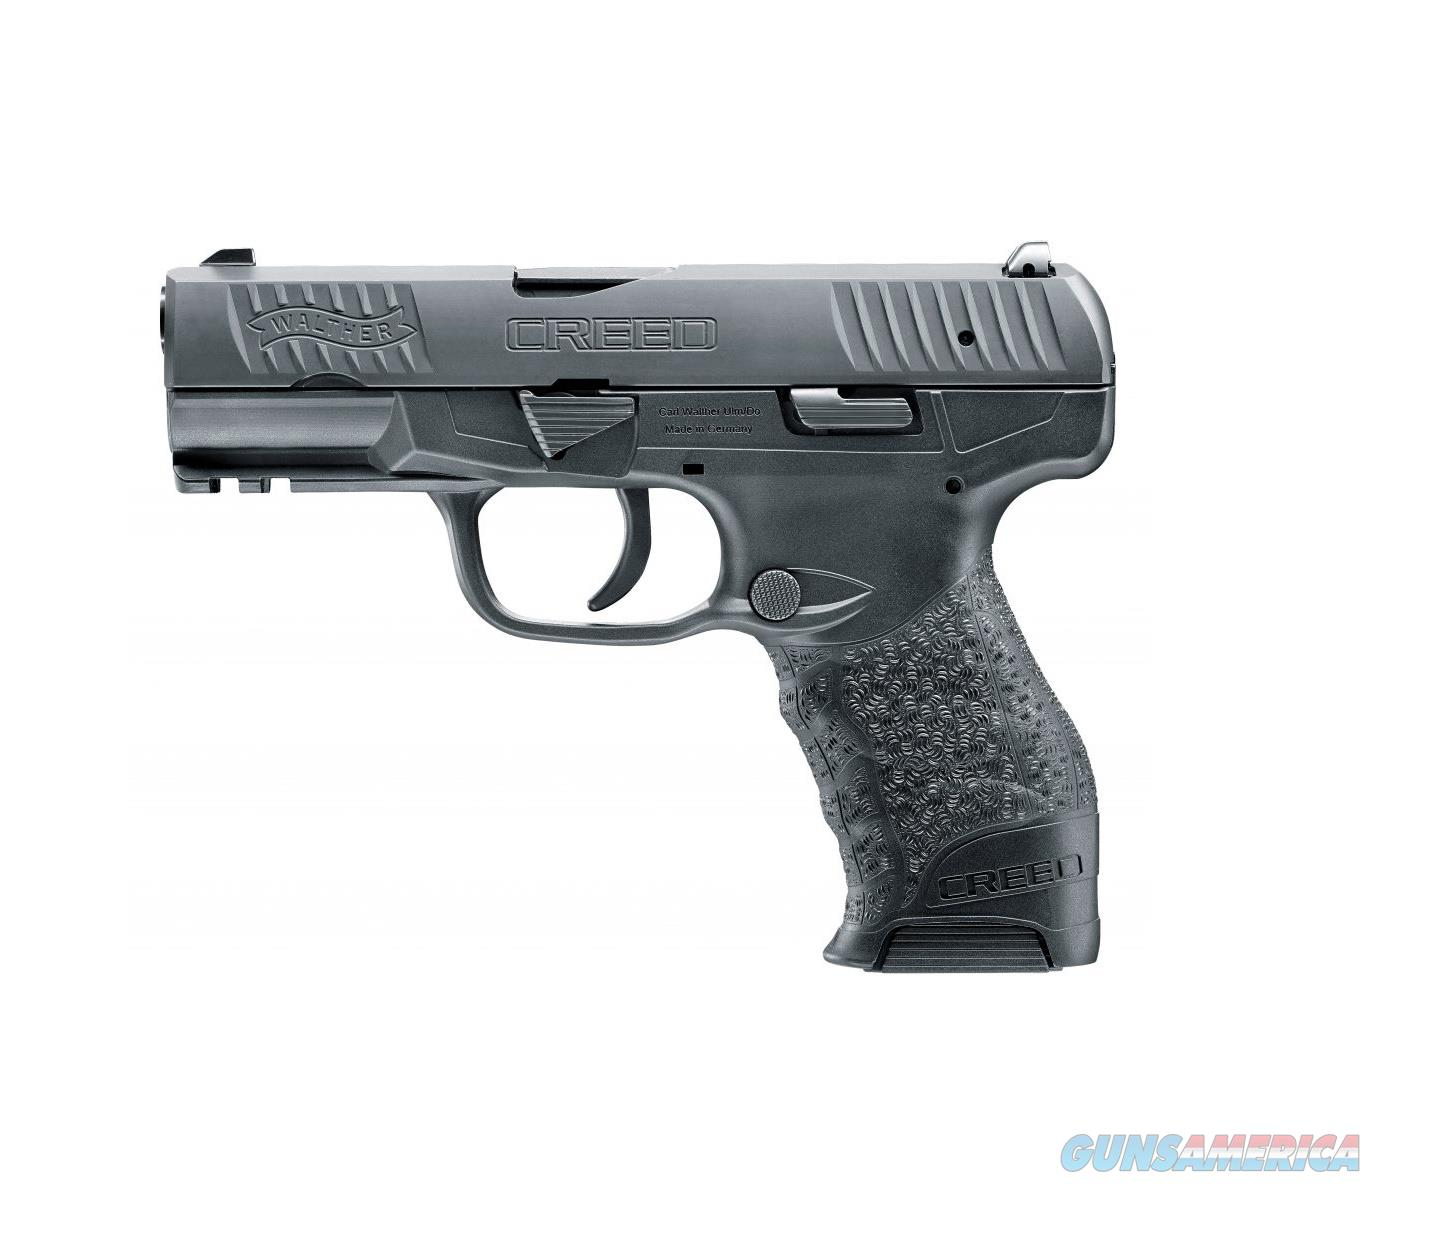 "Walther Arms Creed 9mm 4"" Barrel 16 Rounds 2815516   Guns > Pistols > Walther Pistols > Post WWII > P99/PPQ"